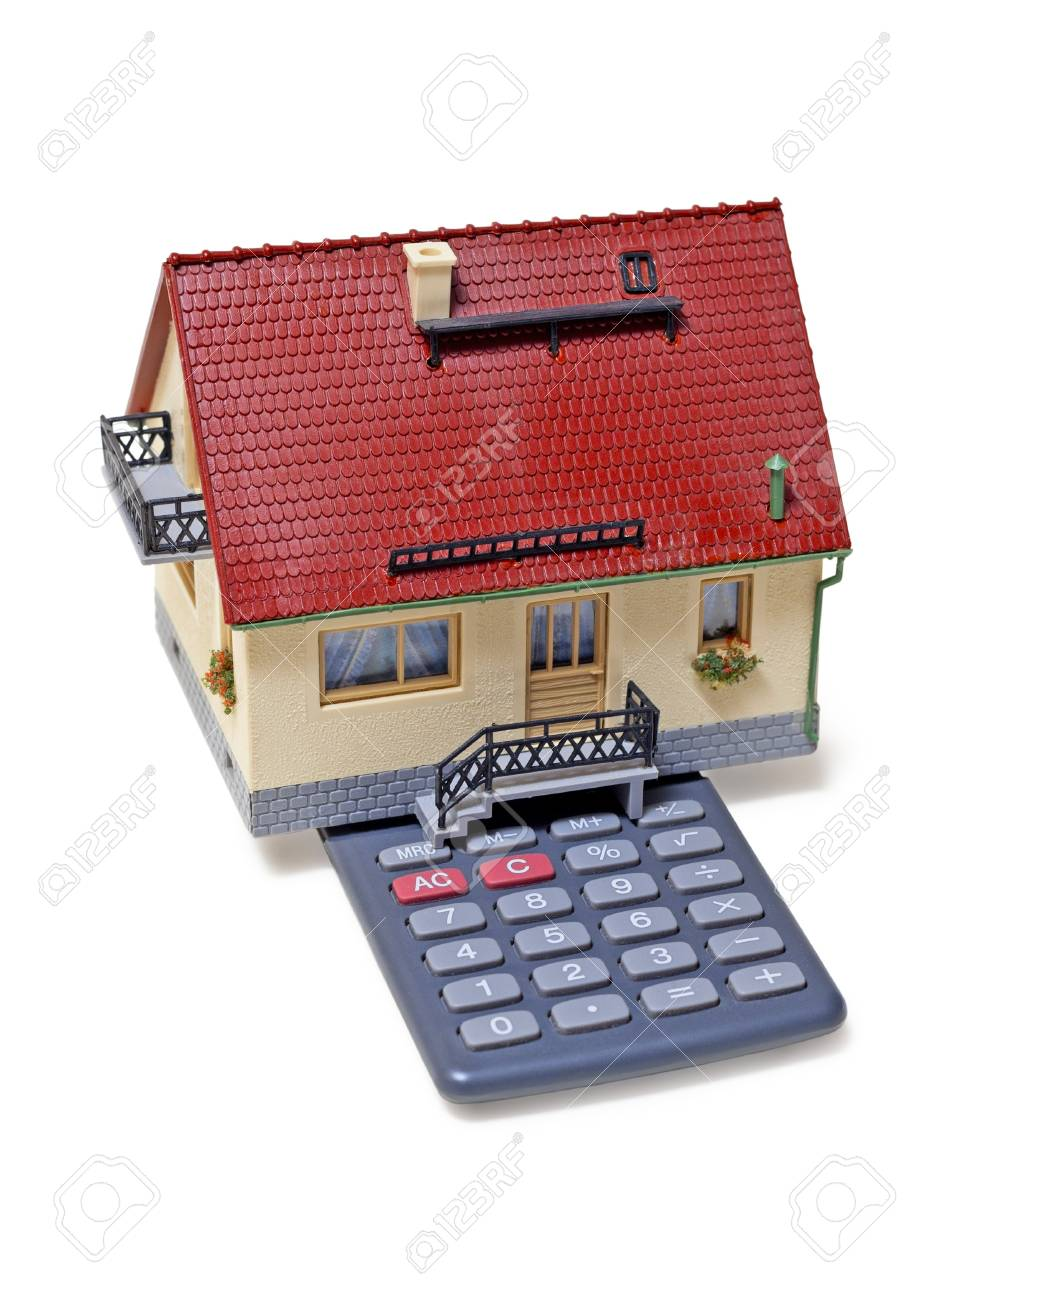 Model house and calculator on white background Stock Photo - 19595840